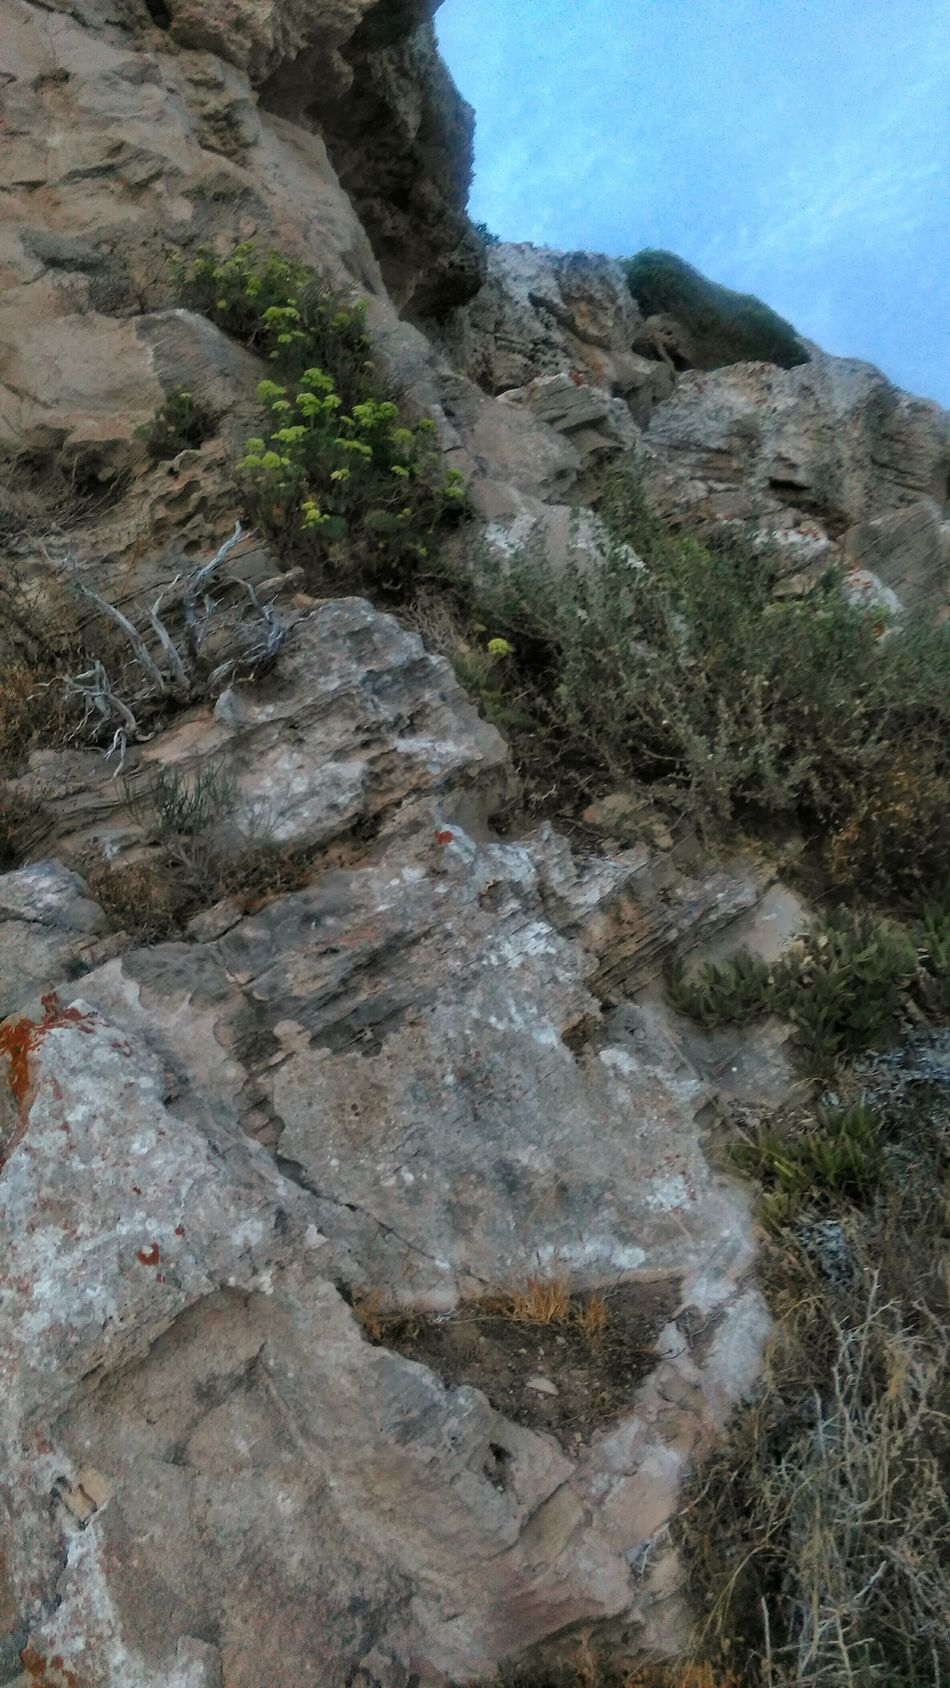 Beauty In Nature Nature No People Outdoors Travelphotography Amazingworld Seaside Rocky Coastline Mallorcaphotographer Mallorcarocks Mallorca (Spain) Coastal Beauty Coastal Rock Coastal Plants